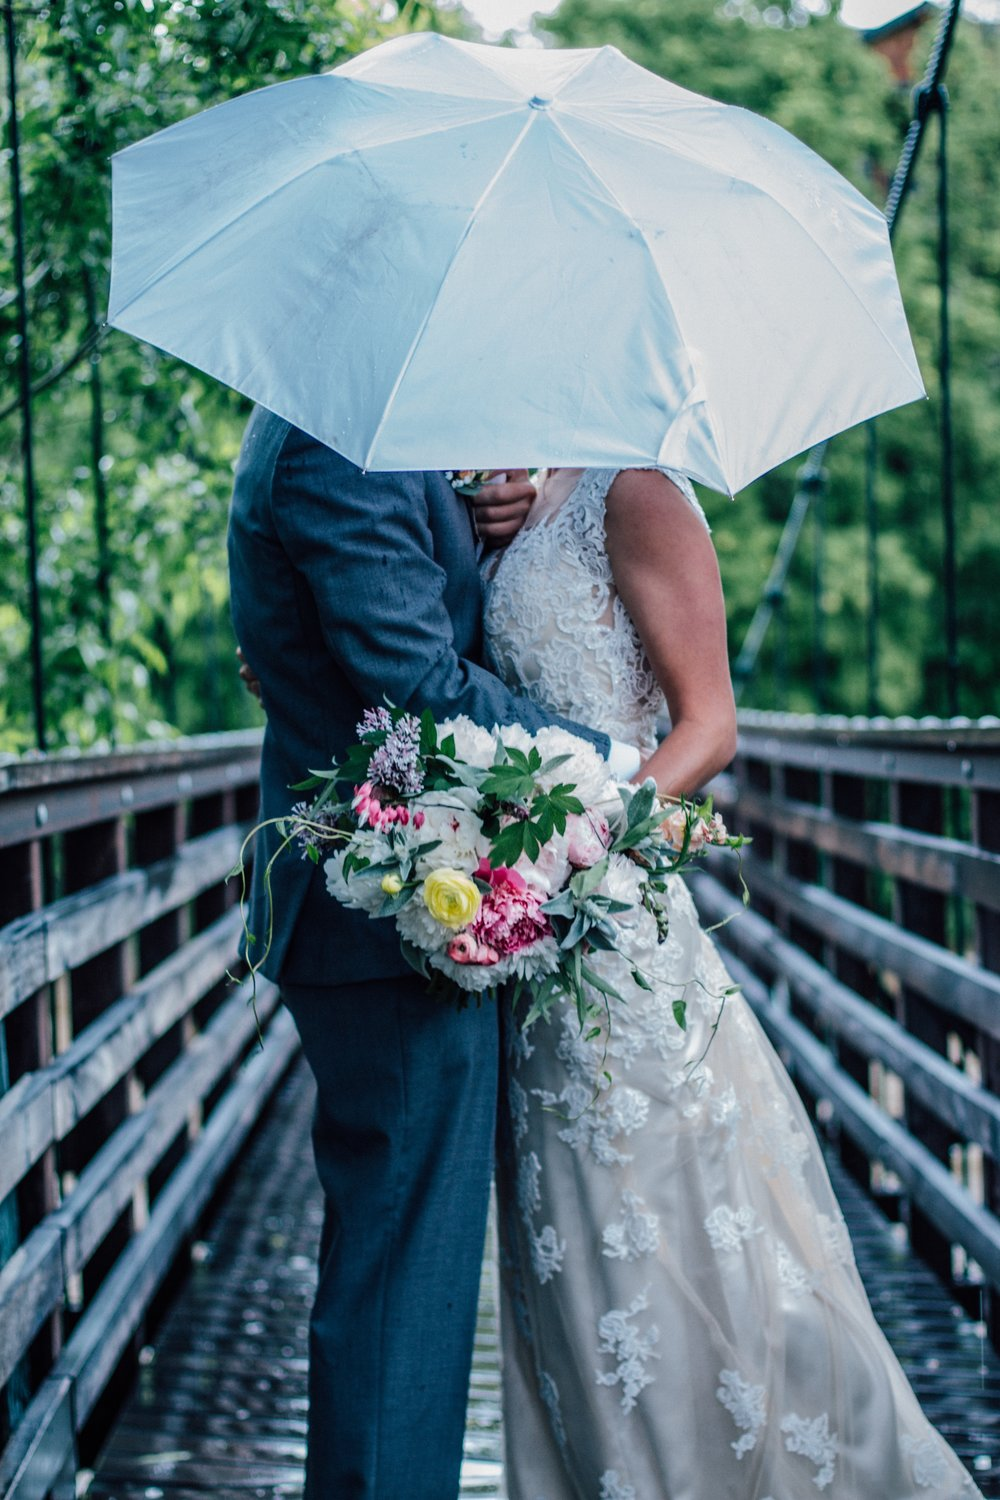 Wedding bouqet with peonies, couple under umbrella